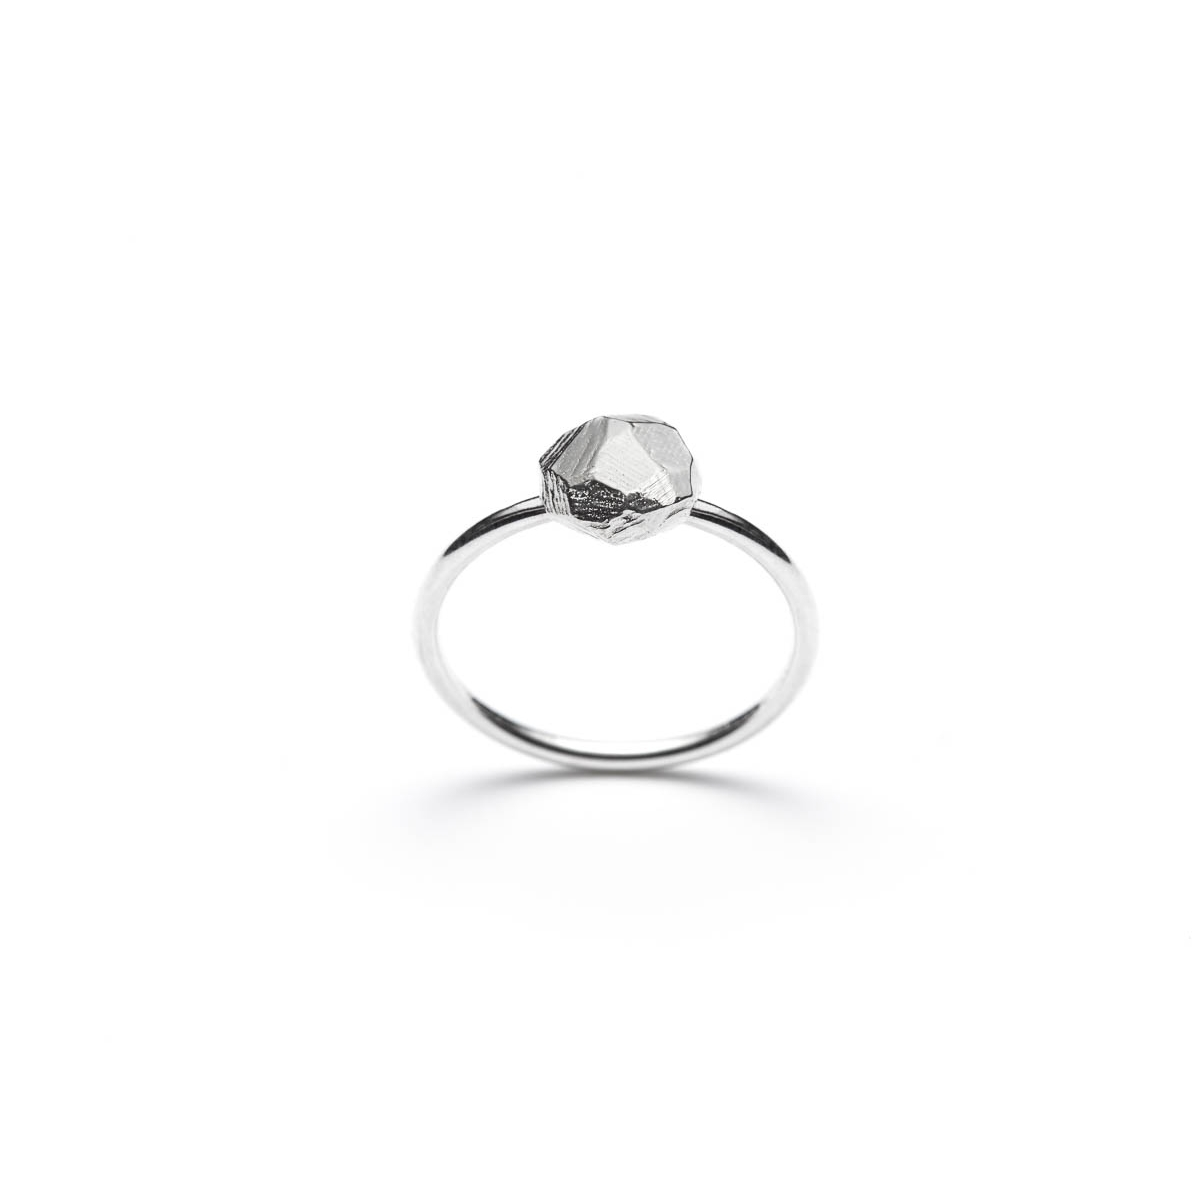 Minimalist silver ring, polished sterling jewelry, minimalist silver ring from Texture line